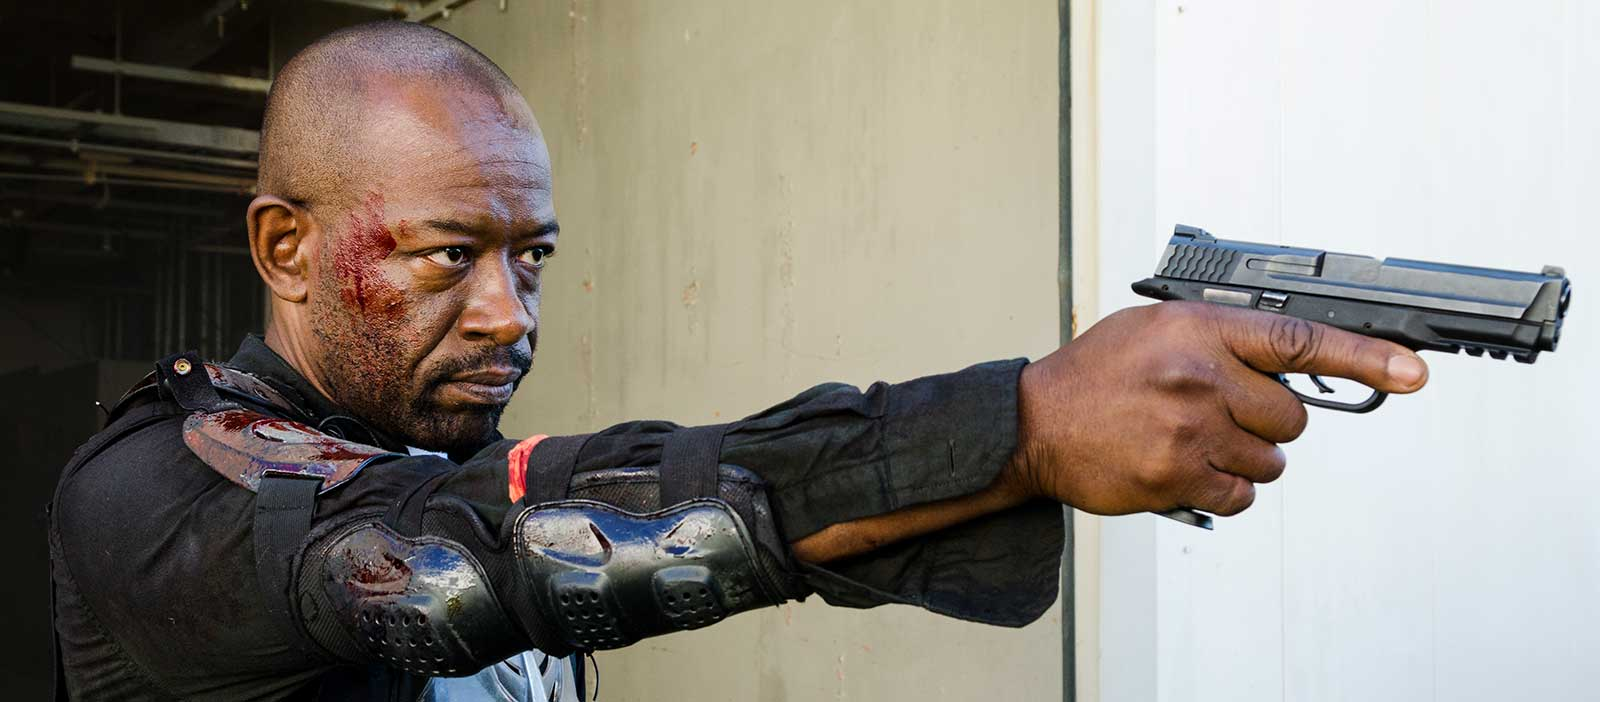 the-walking-dead-episode-802-morgan-james-800×600-interview